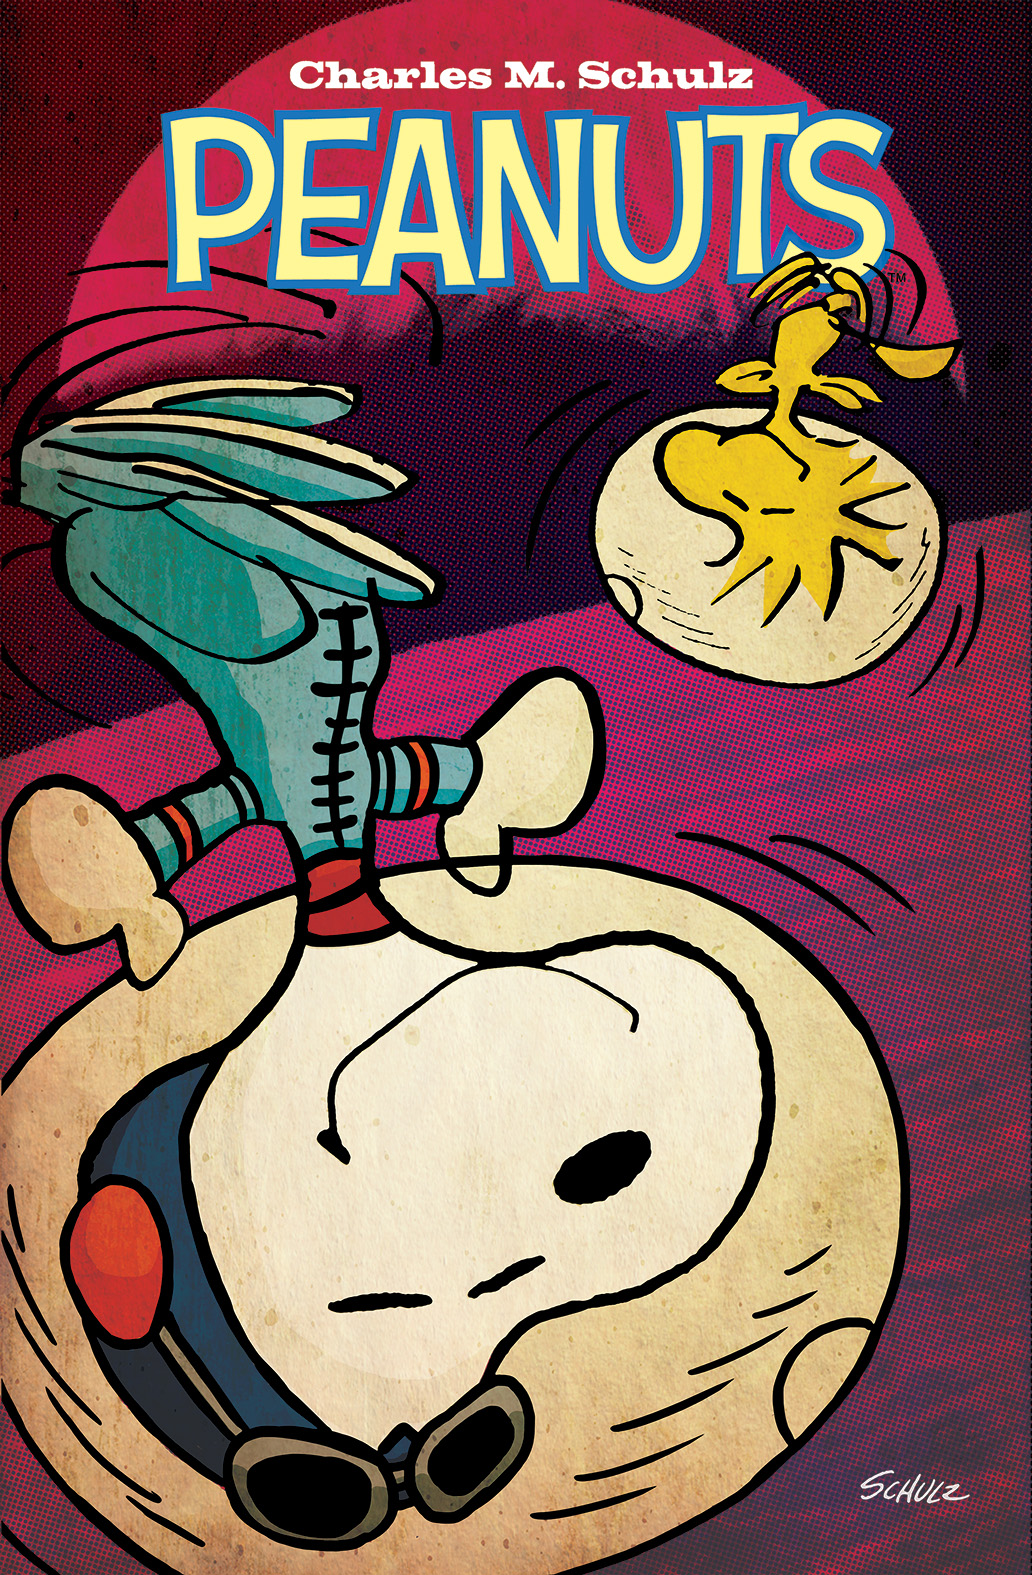 PEANUTS #19 Cover A by Charles Schulz, Various